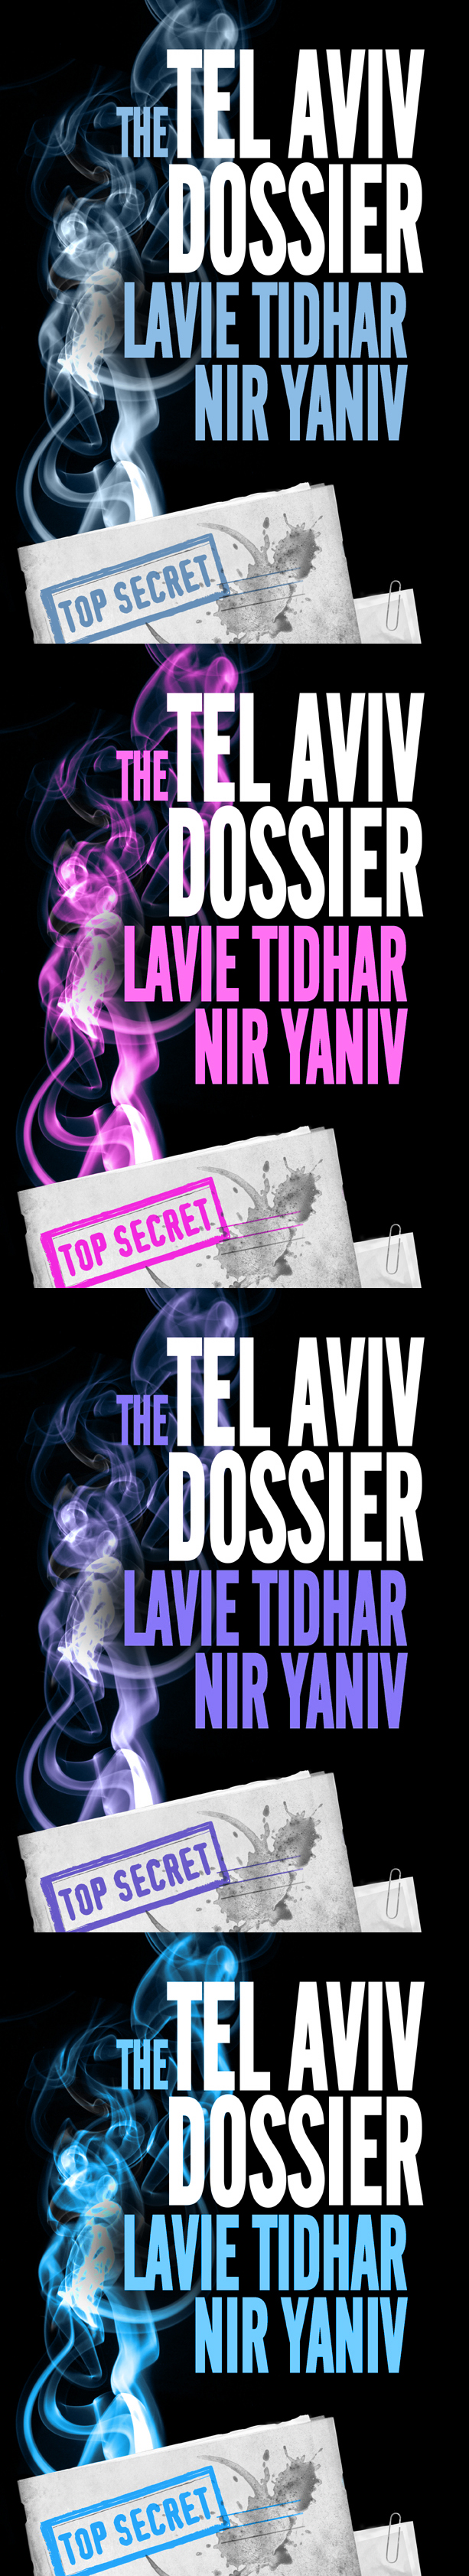 Lavie Tidhar's the book cover for The Tel Aviv Dossiers. Into the city of Tel Aviv the whirlwinds come, and nothing will ever be the same...